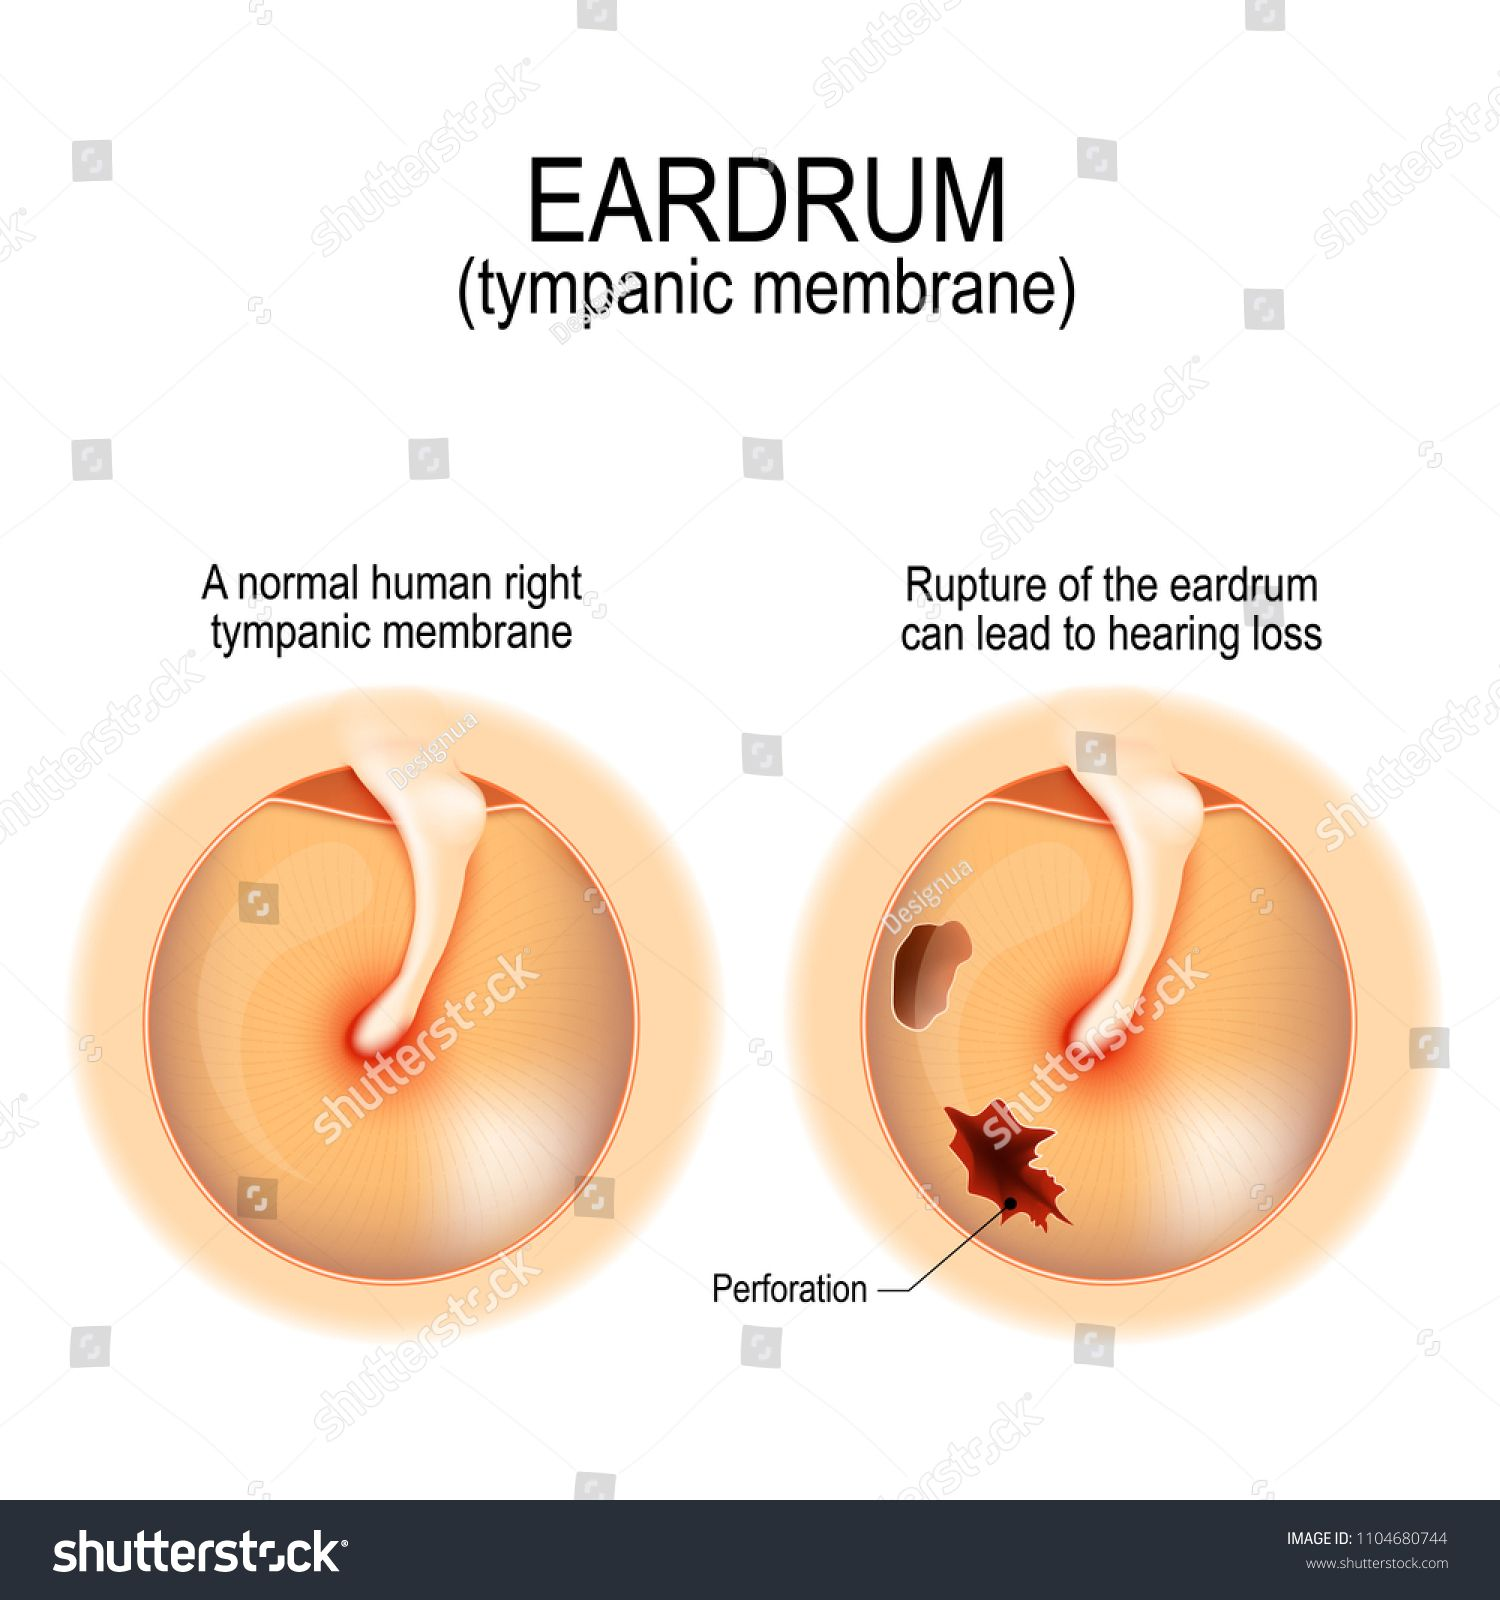 Ruptured Eardrum Anatomy Of The Humans Eardrum Healthy And Perforated Tympanic Membrane Vector Illustration For In 2020 Human Icon Illustration Illustration Design